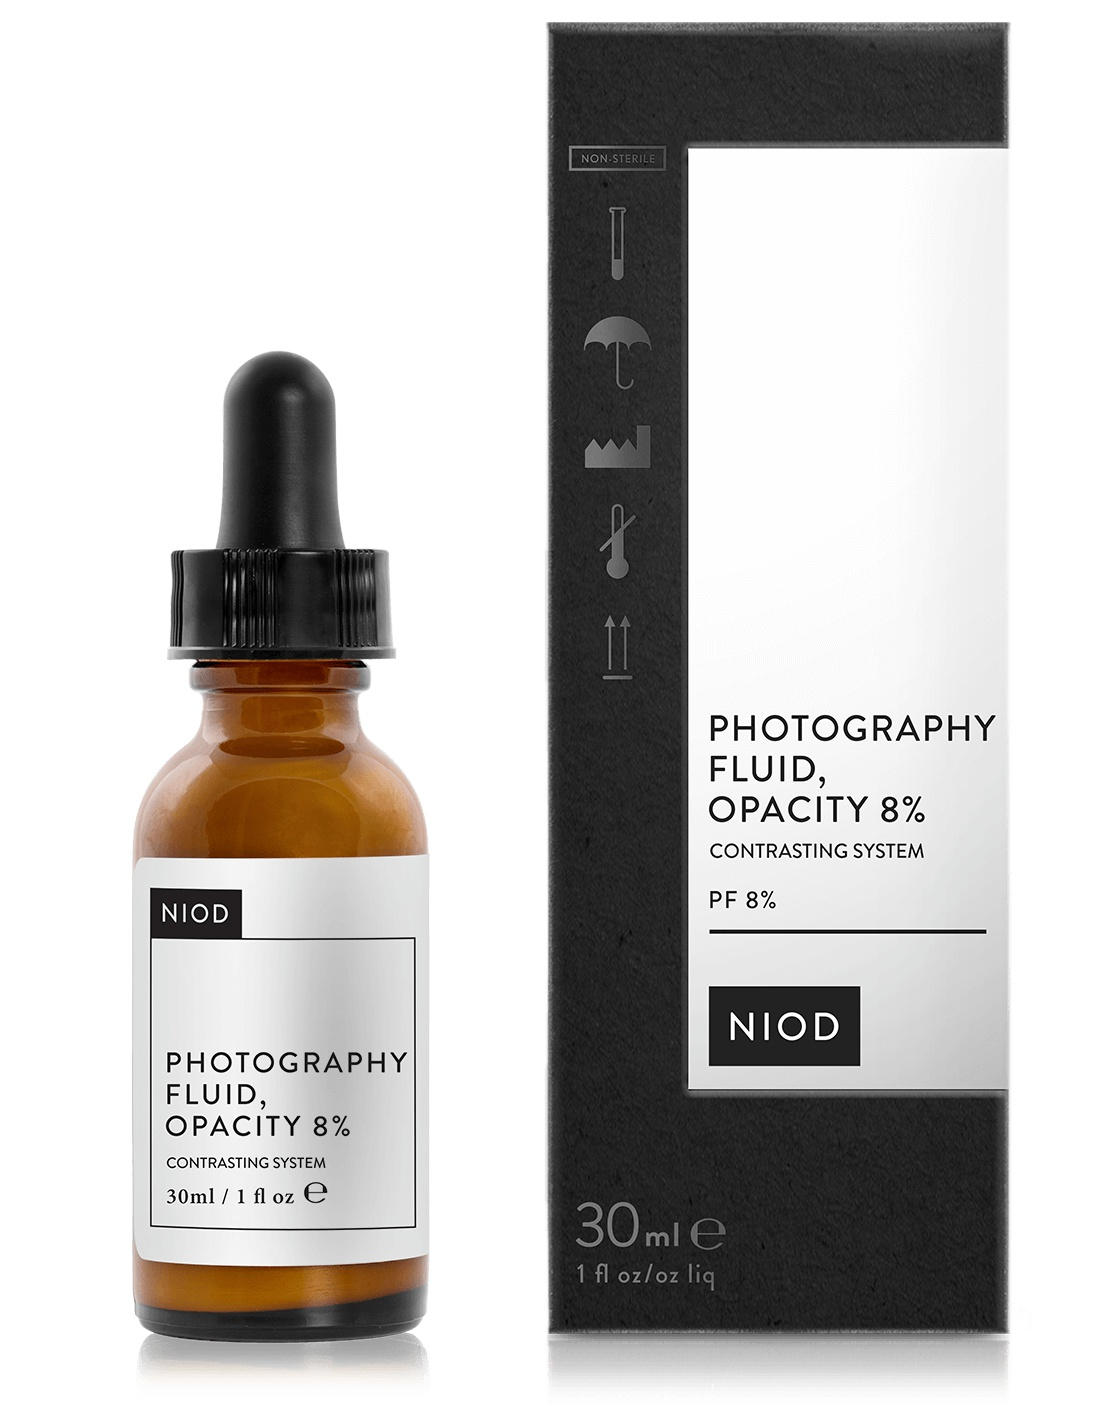 NIOD Photography Fluid, Opacity 8%